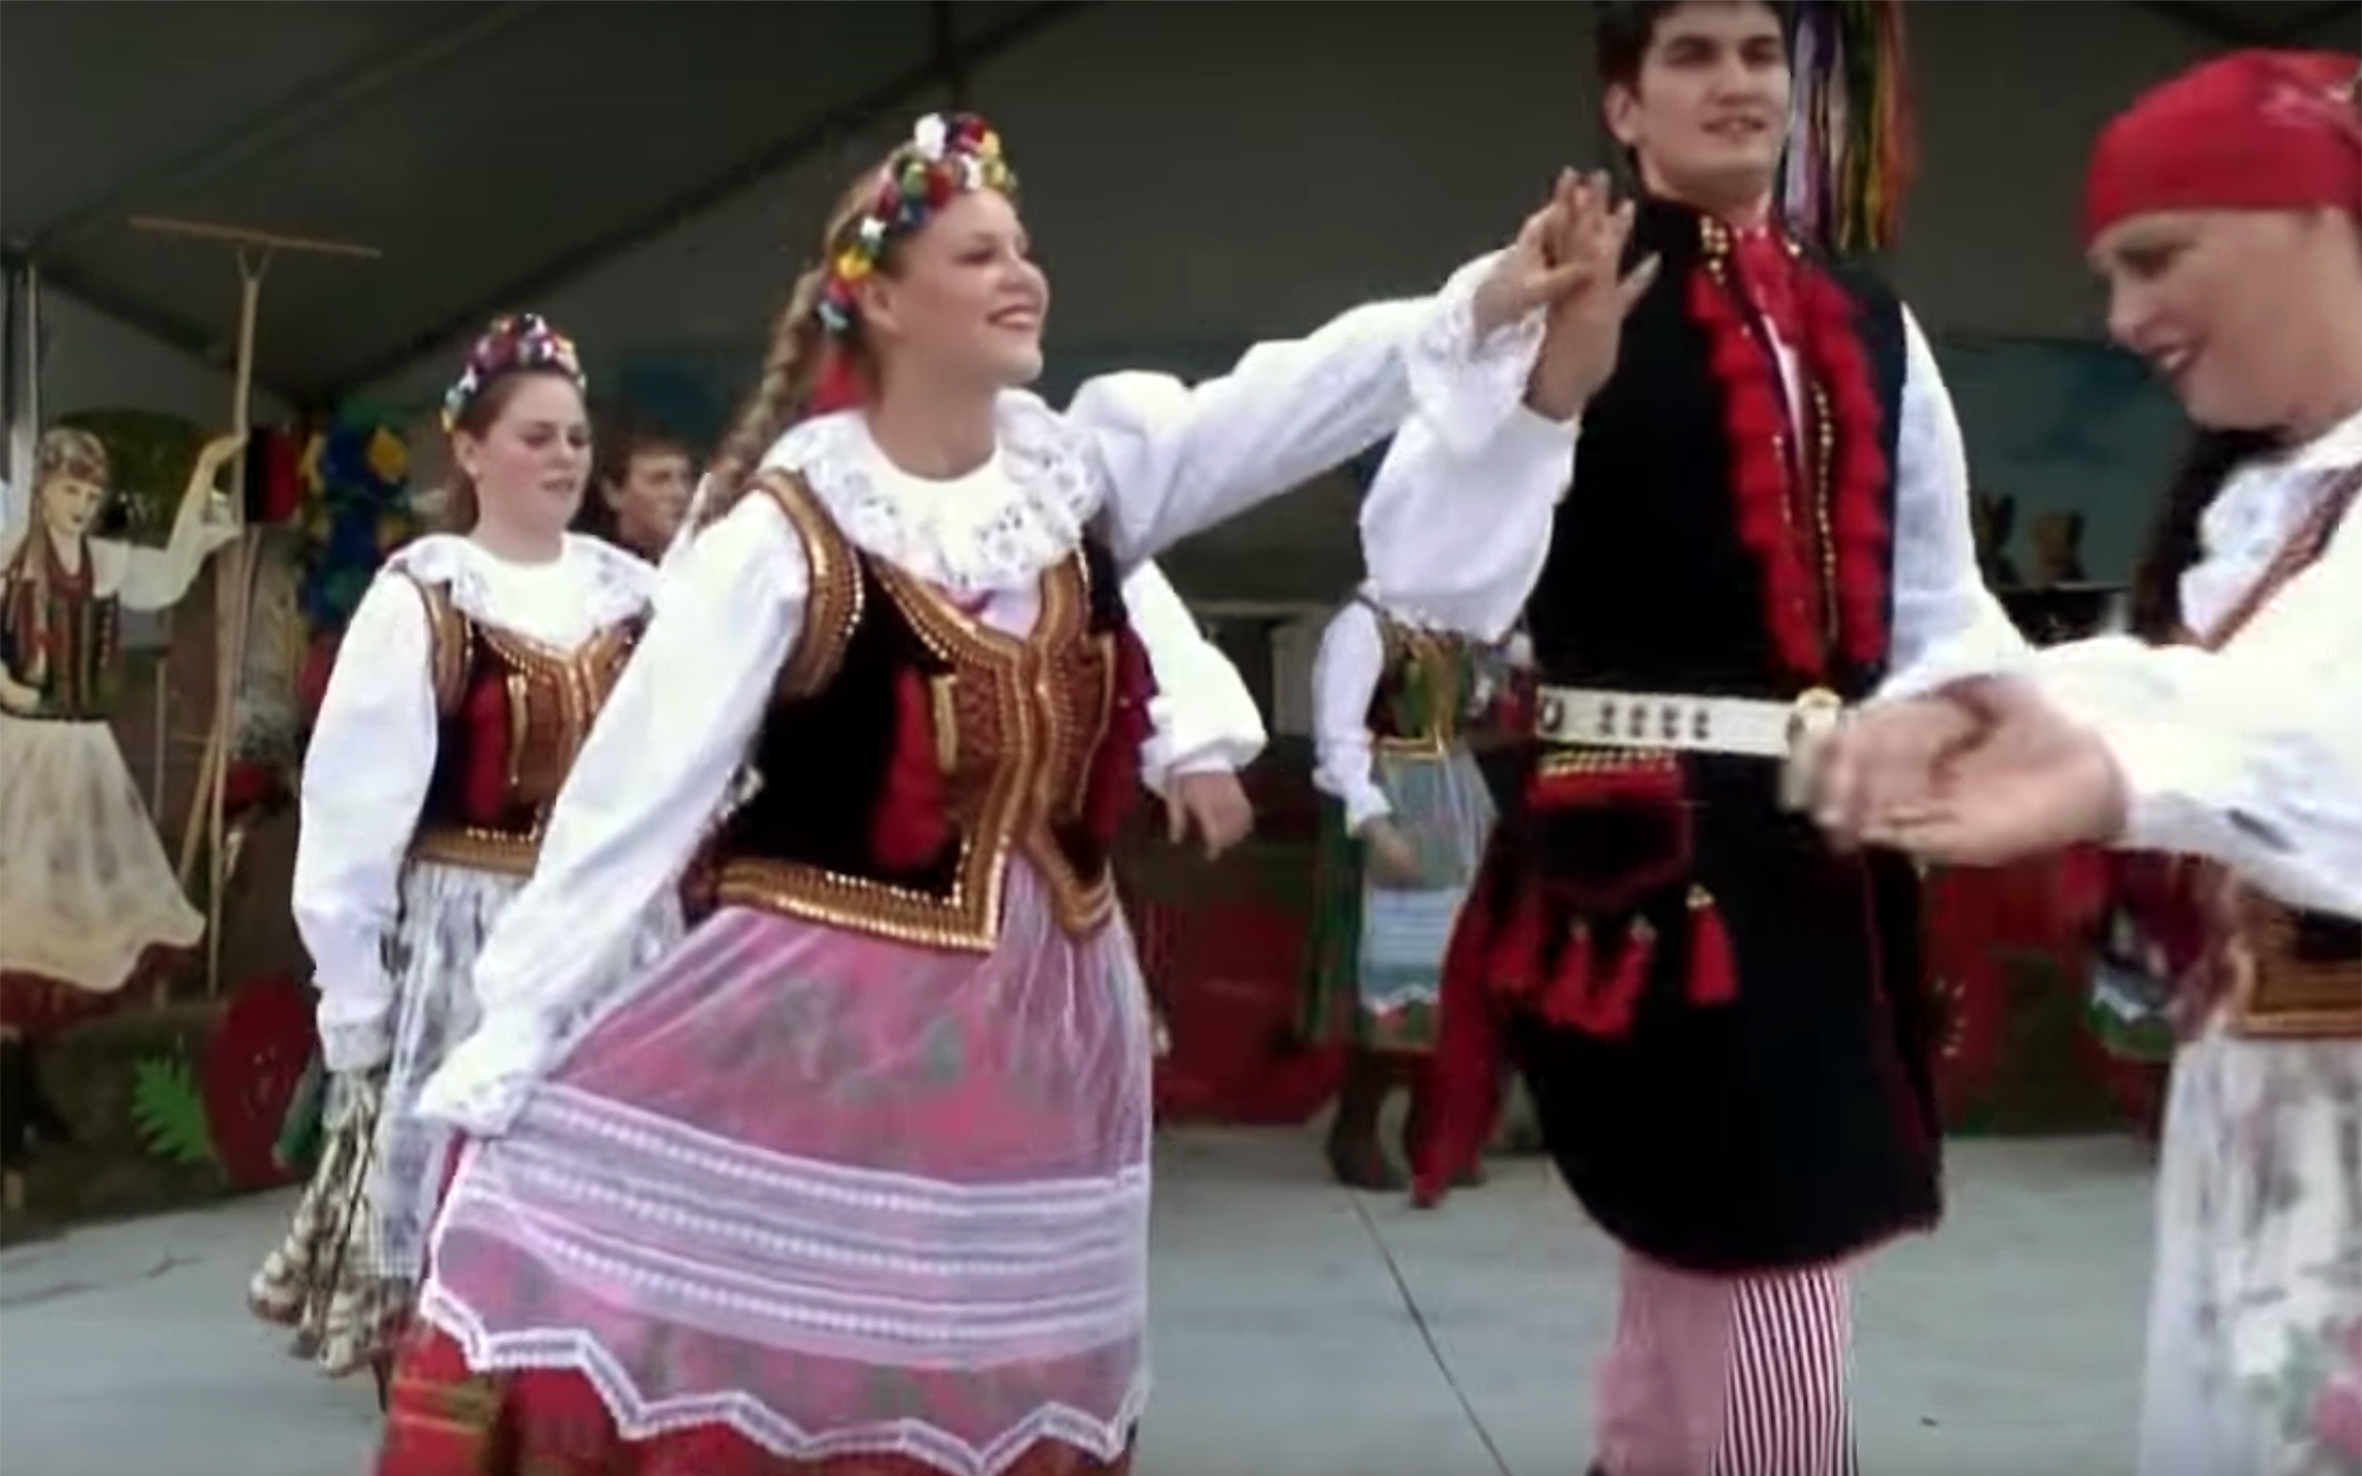 "588.Mazur / Poland - Mazur is a traditional Polish folk dance from Masovia. It combines similarity with mazurek and oberek (at a faster rate) and kujawiak (slow). It is characterized by a tendency to accentuate the second and third parts of the bar and a rhythmic figure with a 4-syllable group. It is a cheerful, dynamic dance, which was often danced at noble mansions. It is danced in the 3/8 metre and performed in a lively tempo. It features three steps in the course of a dynamic, fast walking with a flat leap between the third and first beat of the bar, as well as gliding steps forward, backward, sideways, or with a turn. These steps are frequently supplemented with ornamental elements and dynamic accents (""hołubiec"" [clicking of heels], strikes, take-offs, and stomps)."